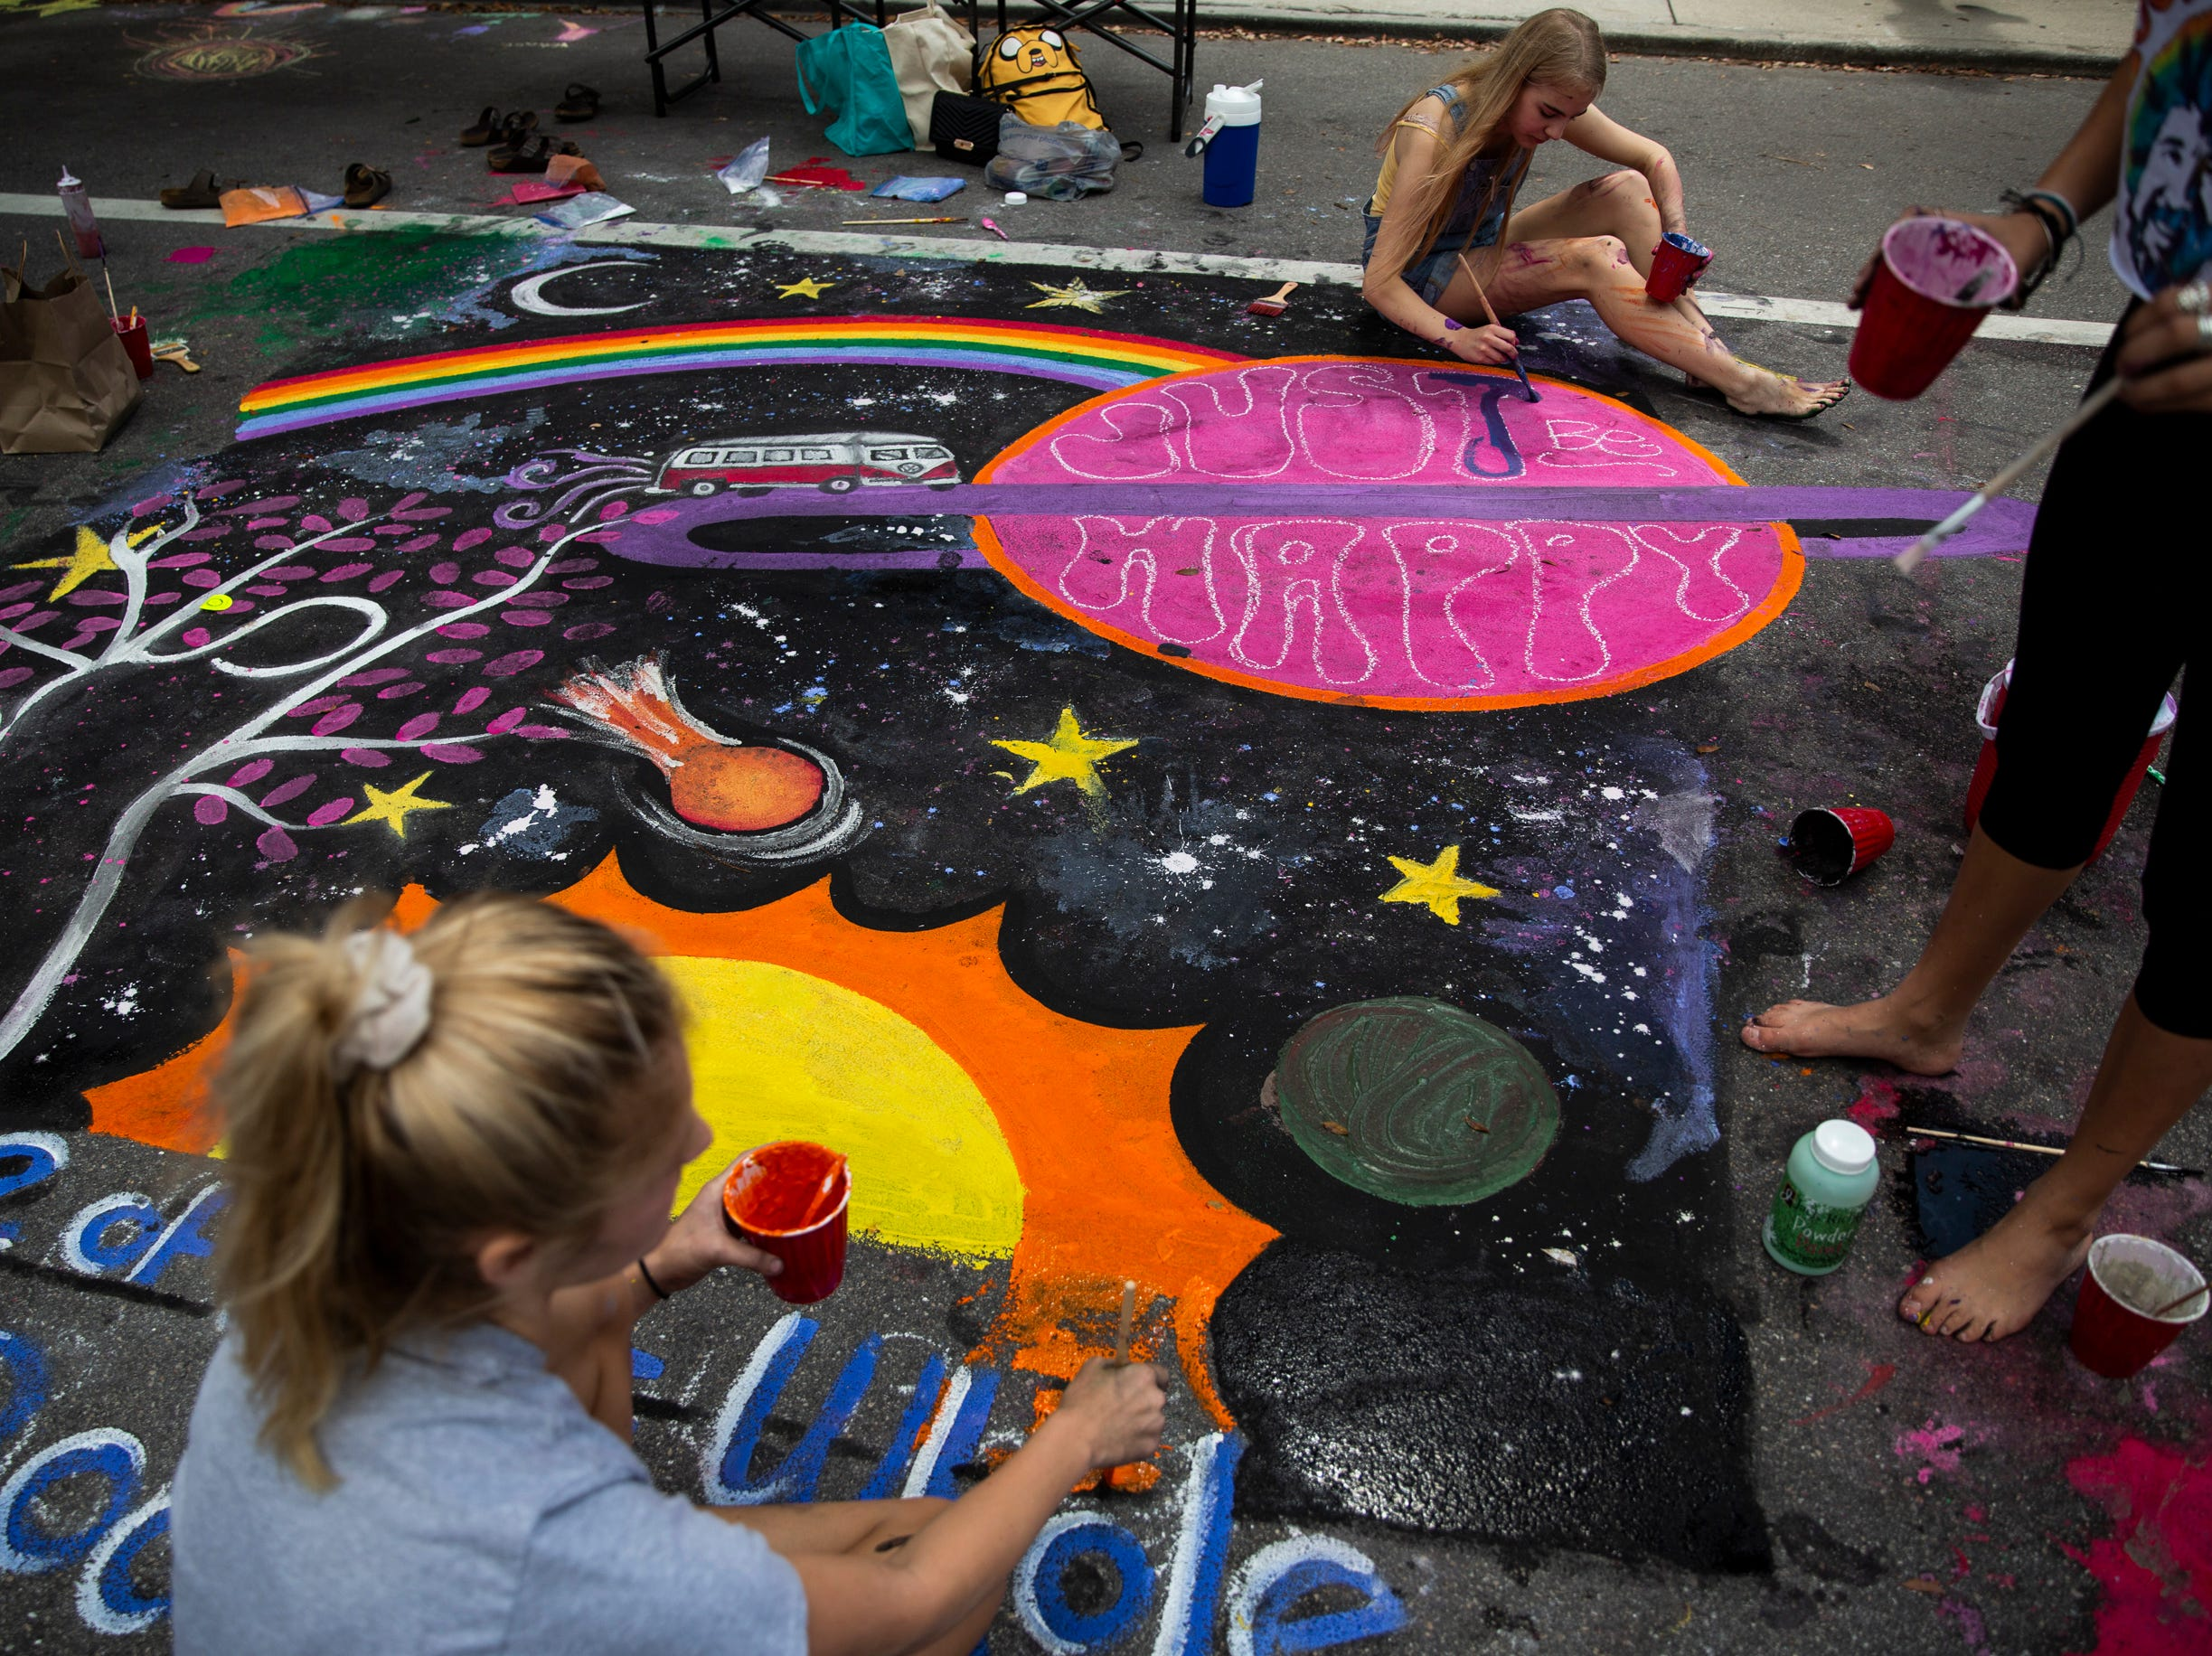 From left to right, Naples High School sophomores Gala Gibson, Norah Winogrodzki, and Grace Harris work on their chalk artwork during the Naples Chalk Art festival on Fifth Avenue South on Saturday, March 9, 2019.